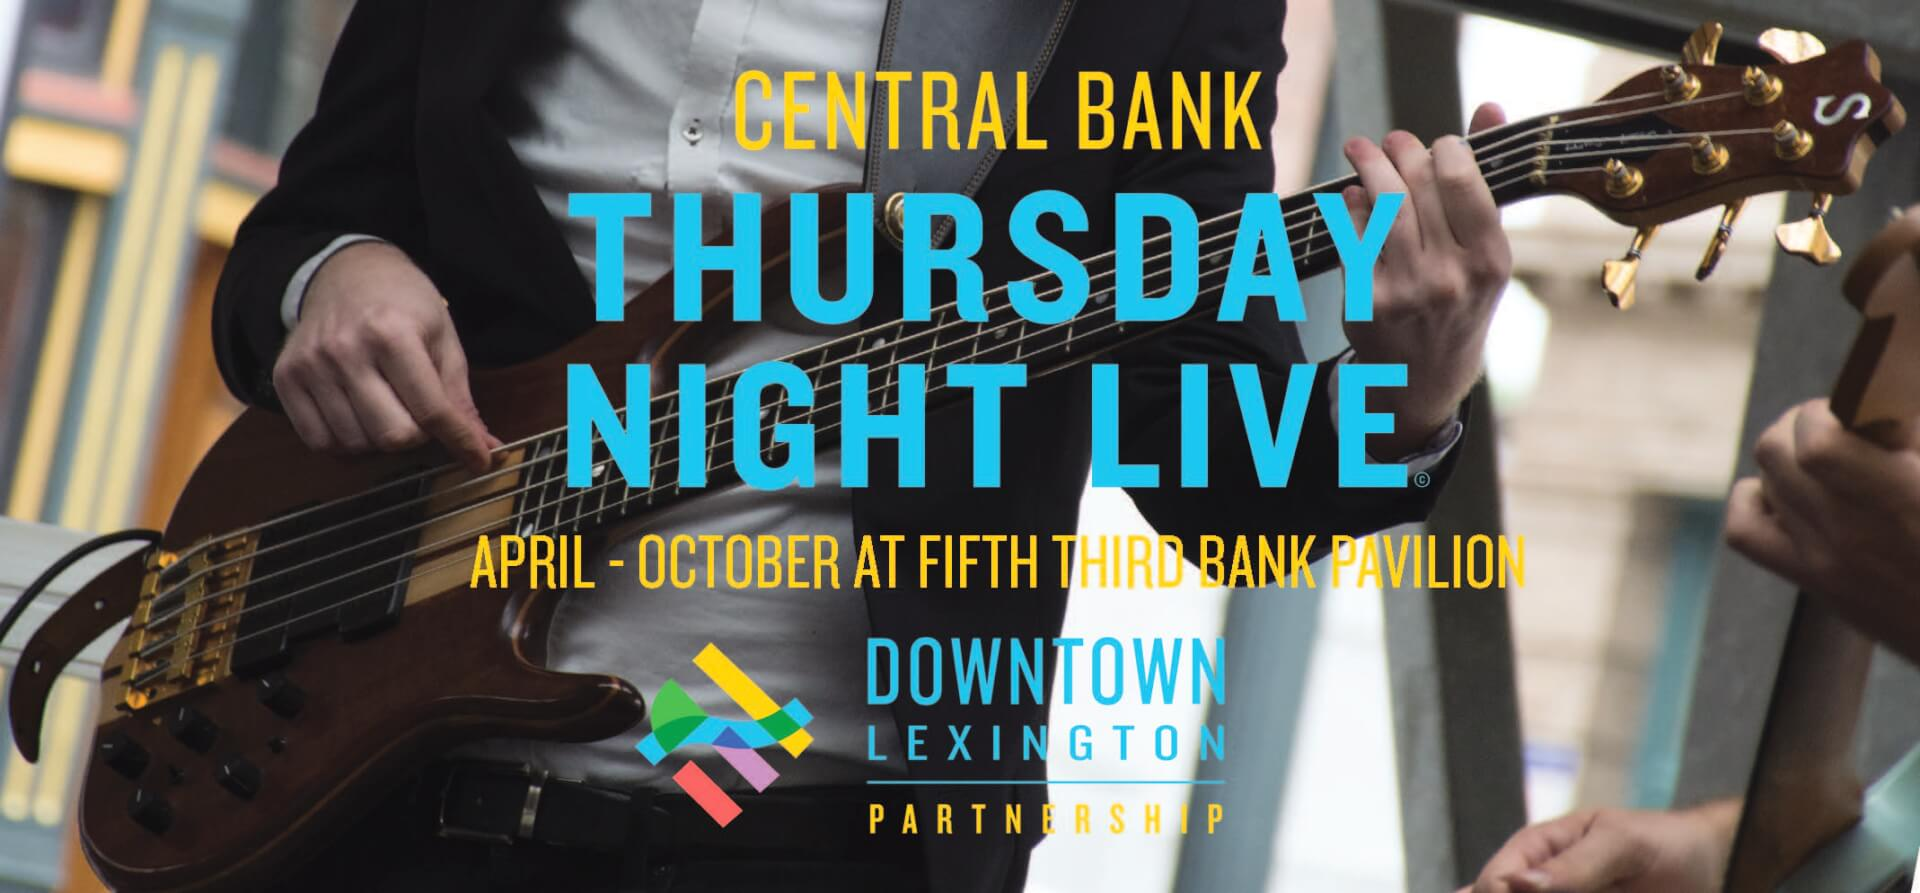 Central Bank Thursday Night Live at Fifth Third Bank Pavilion